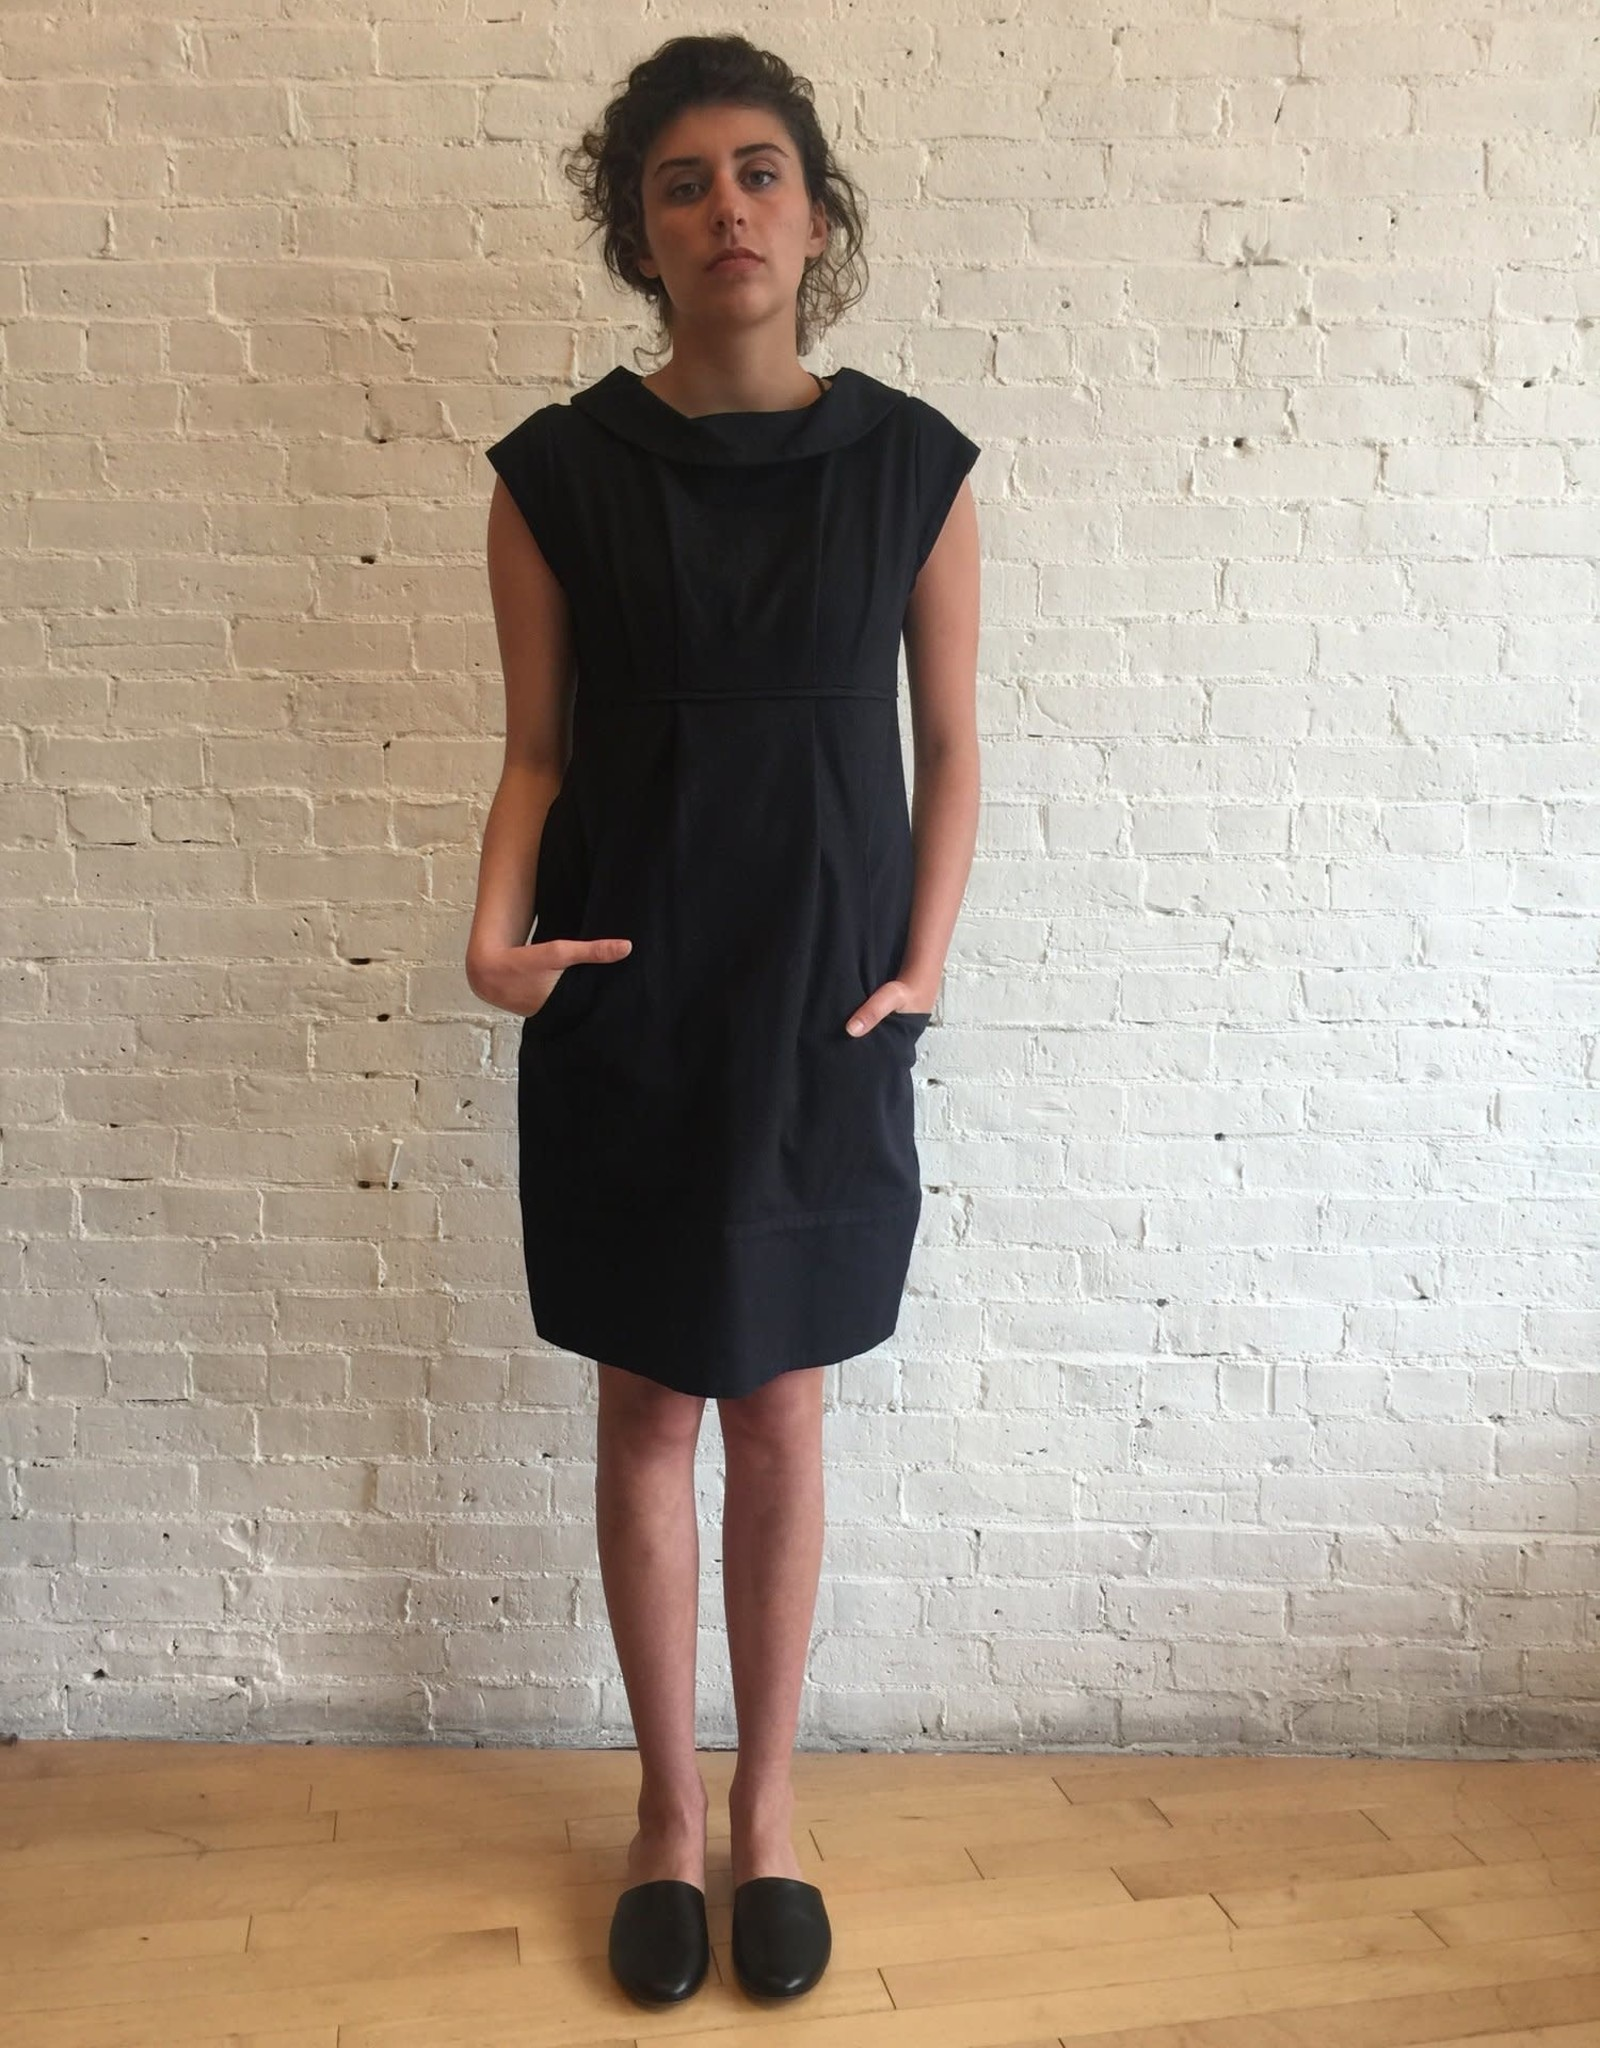 Virginia Bizzi Voreo Black Dress